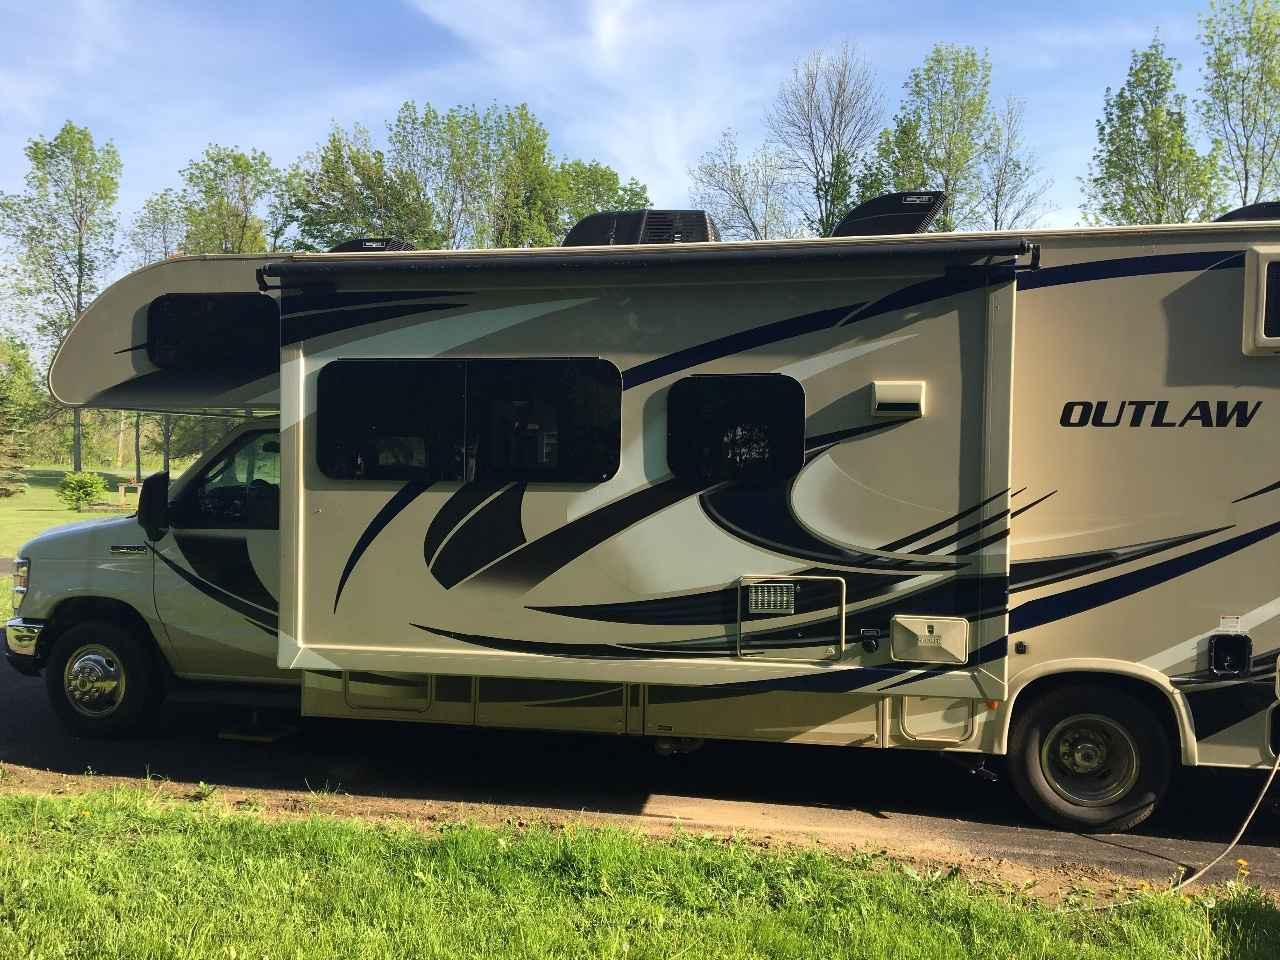 2017 Used Thor Motor Coach Outlaw 29h Class C In New York Ny